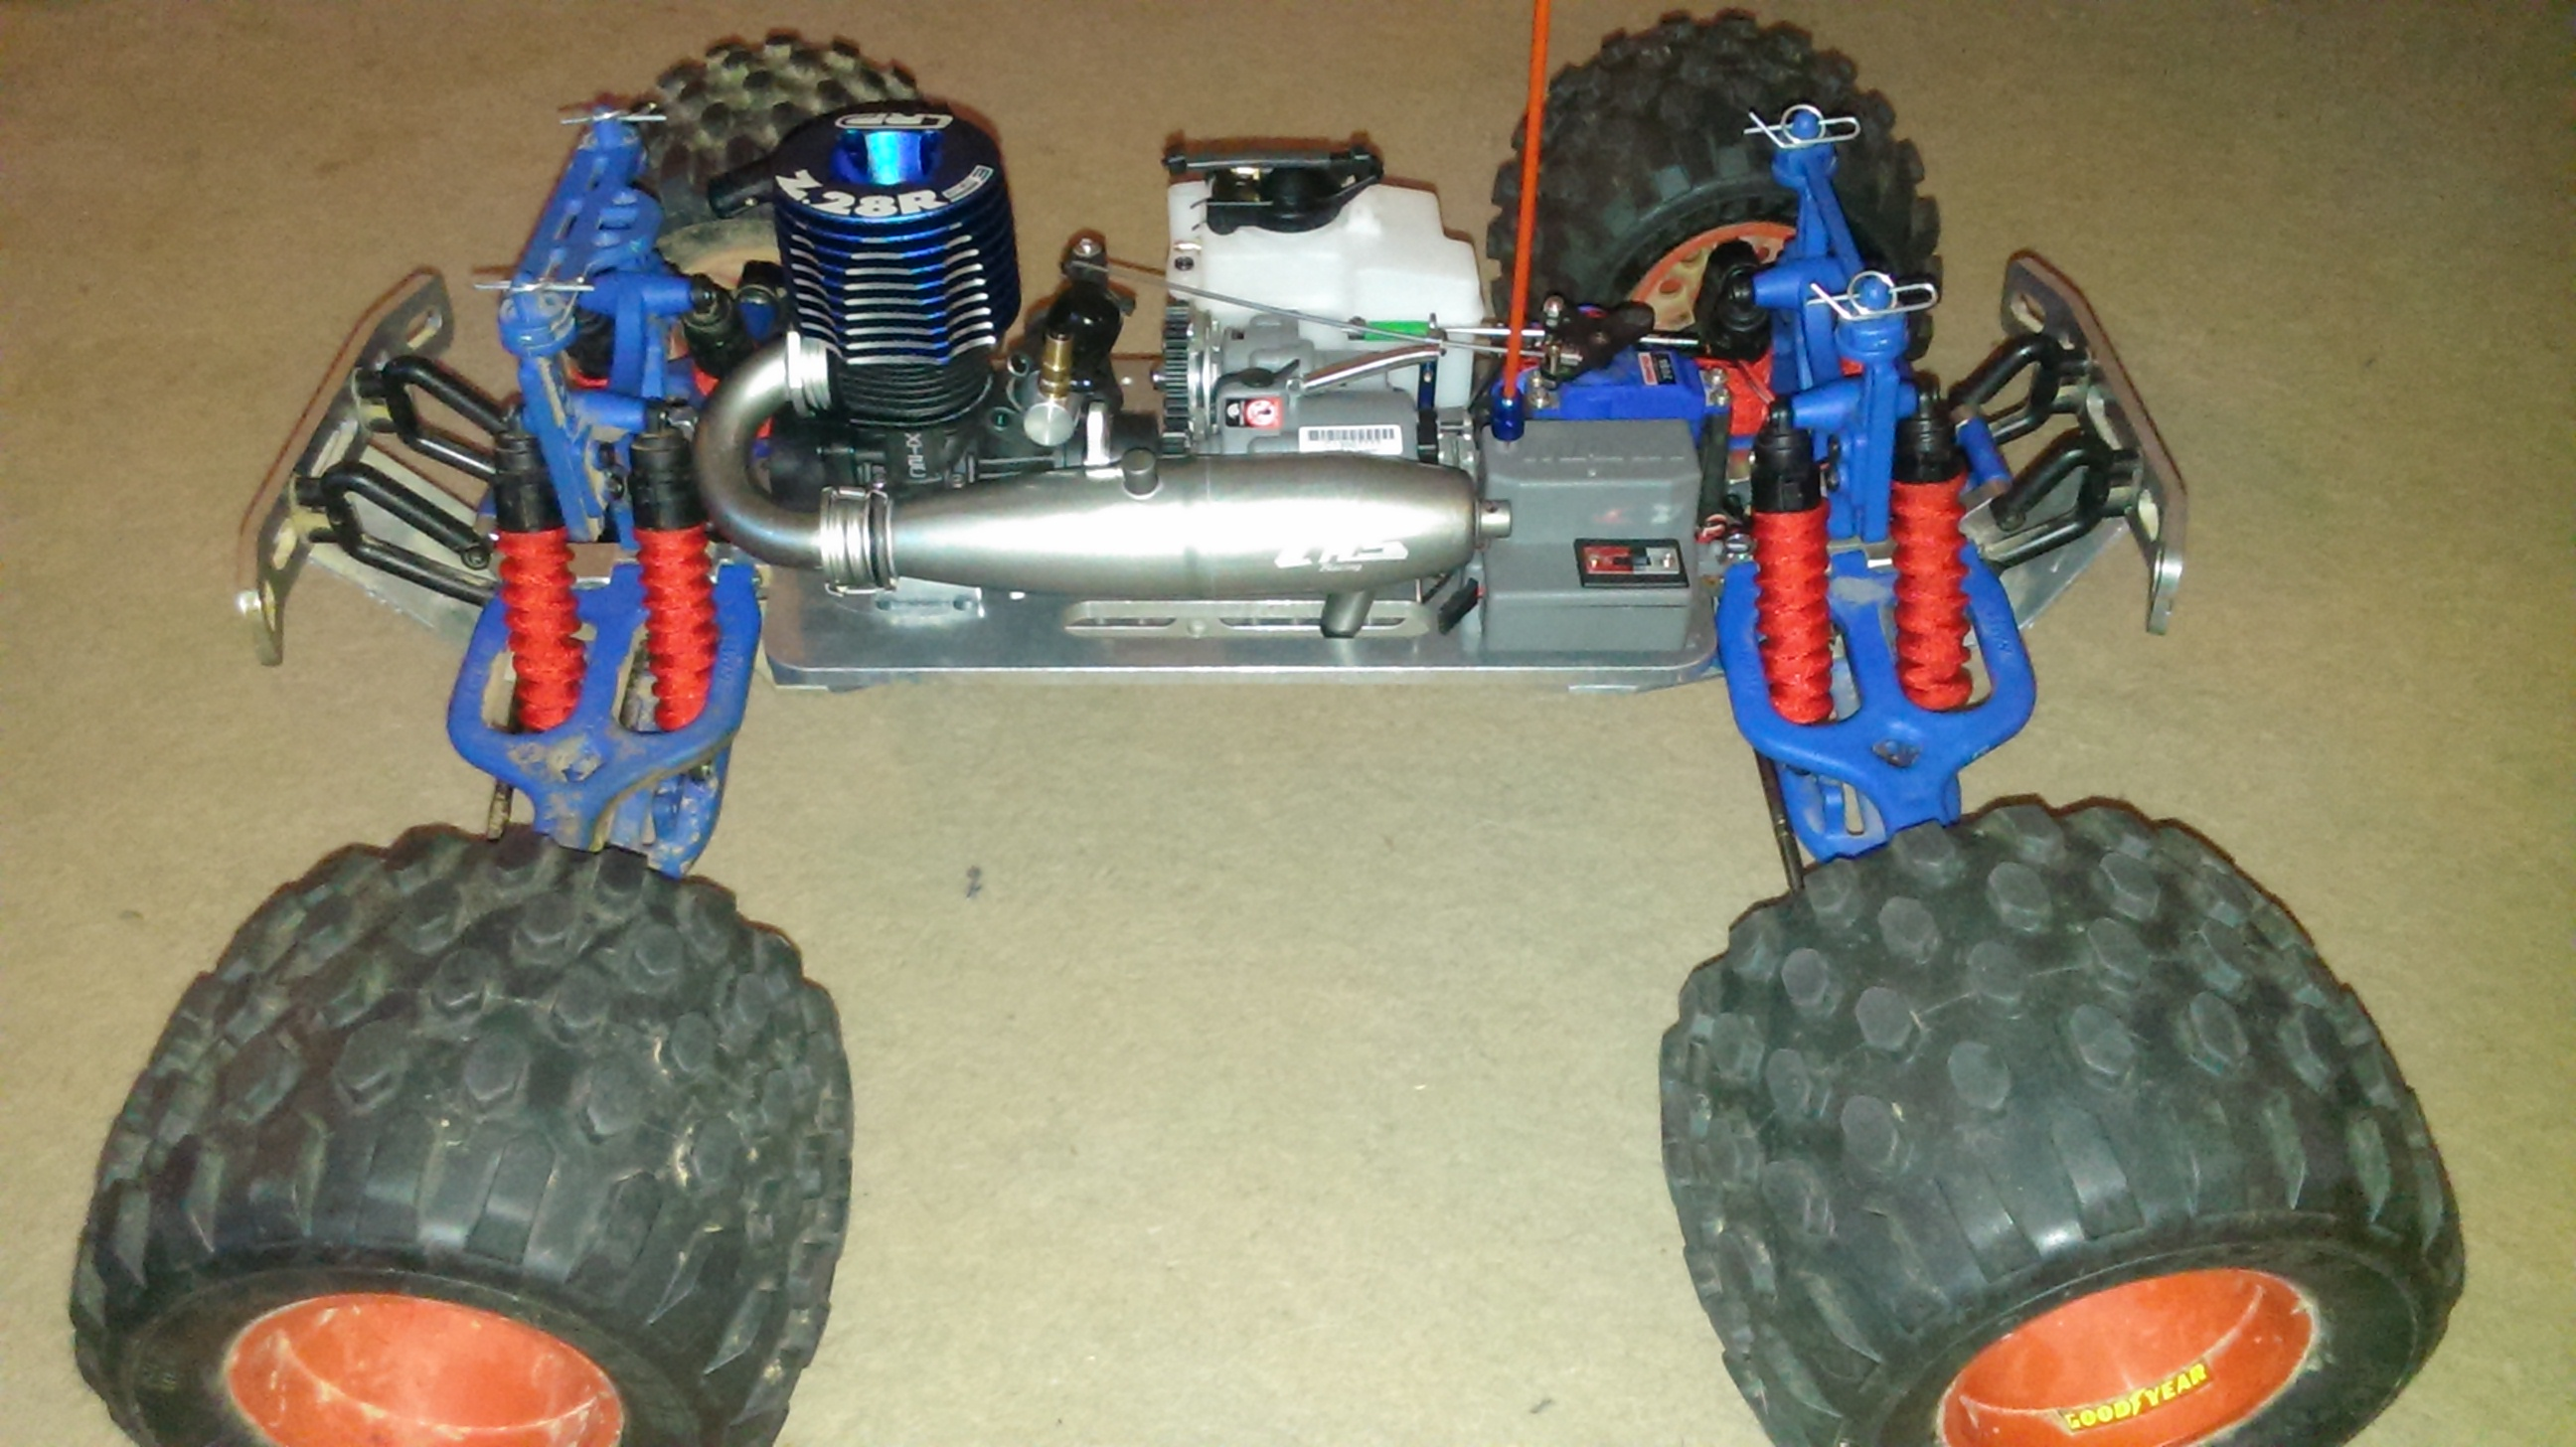 New engine for Mad Force? - RCU Forums